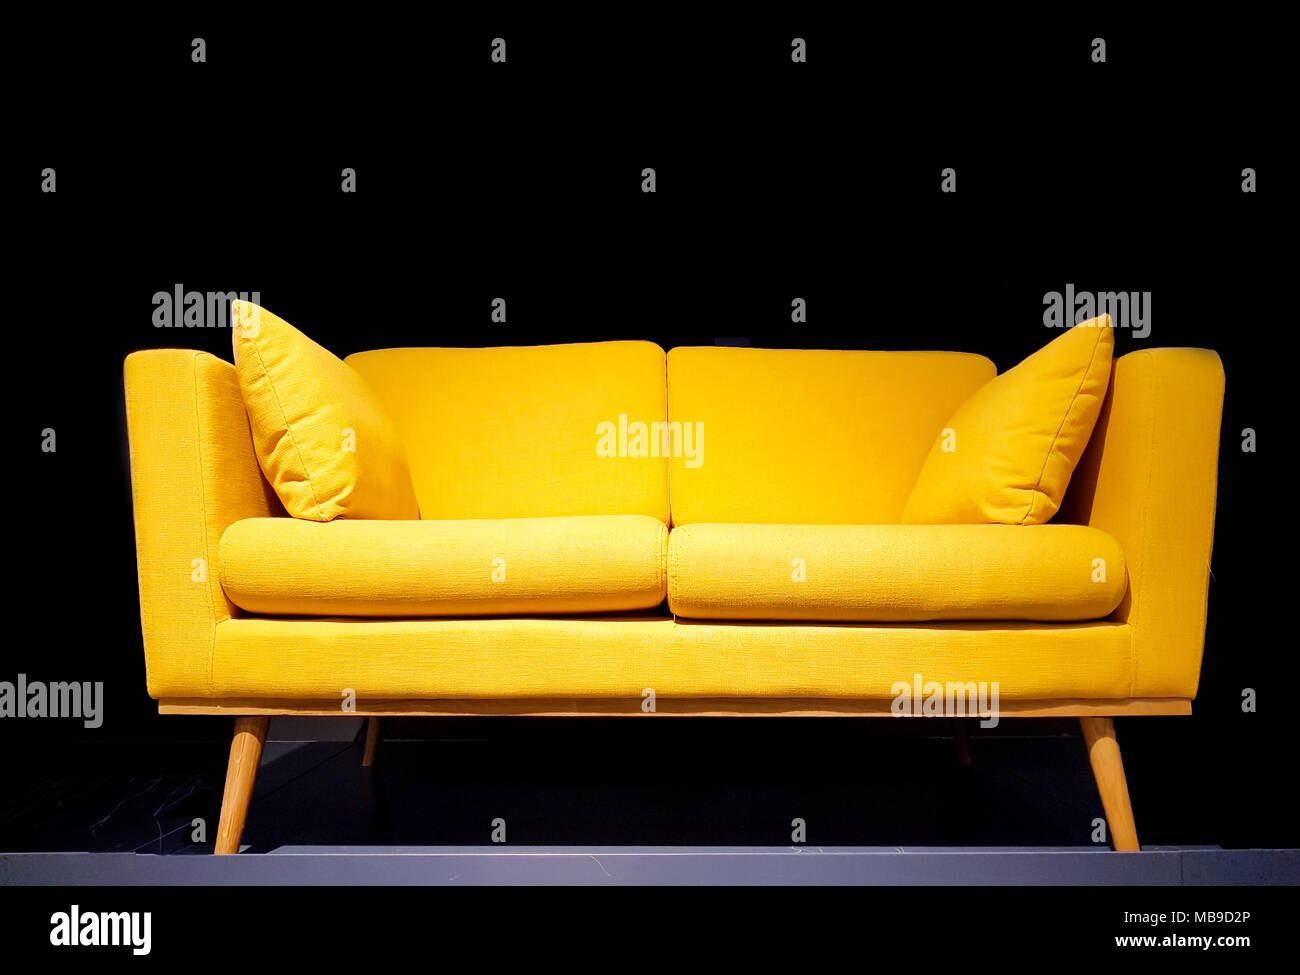 Superieur Yellow Sofa In Dark Room With Dim Light Background Stock ...